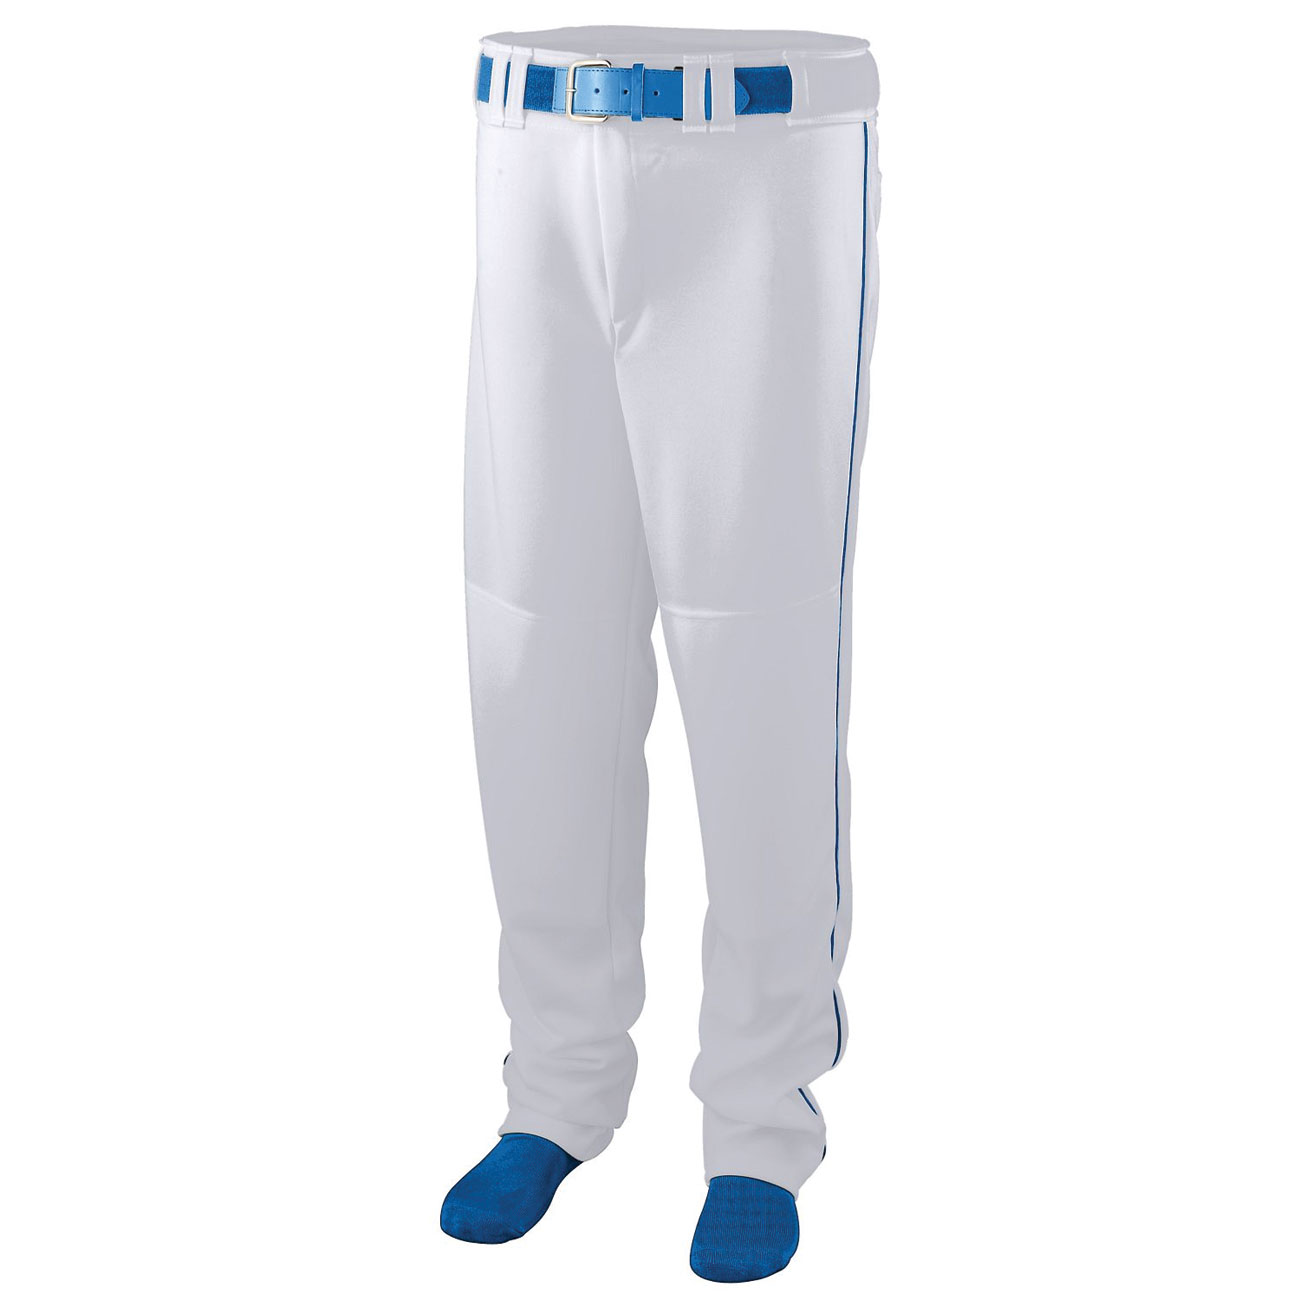 Youth 11 oz. Baseball/Softball Pant With Piping